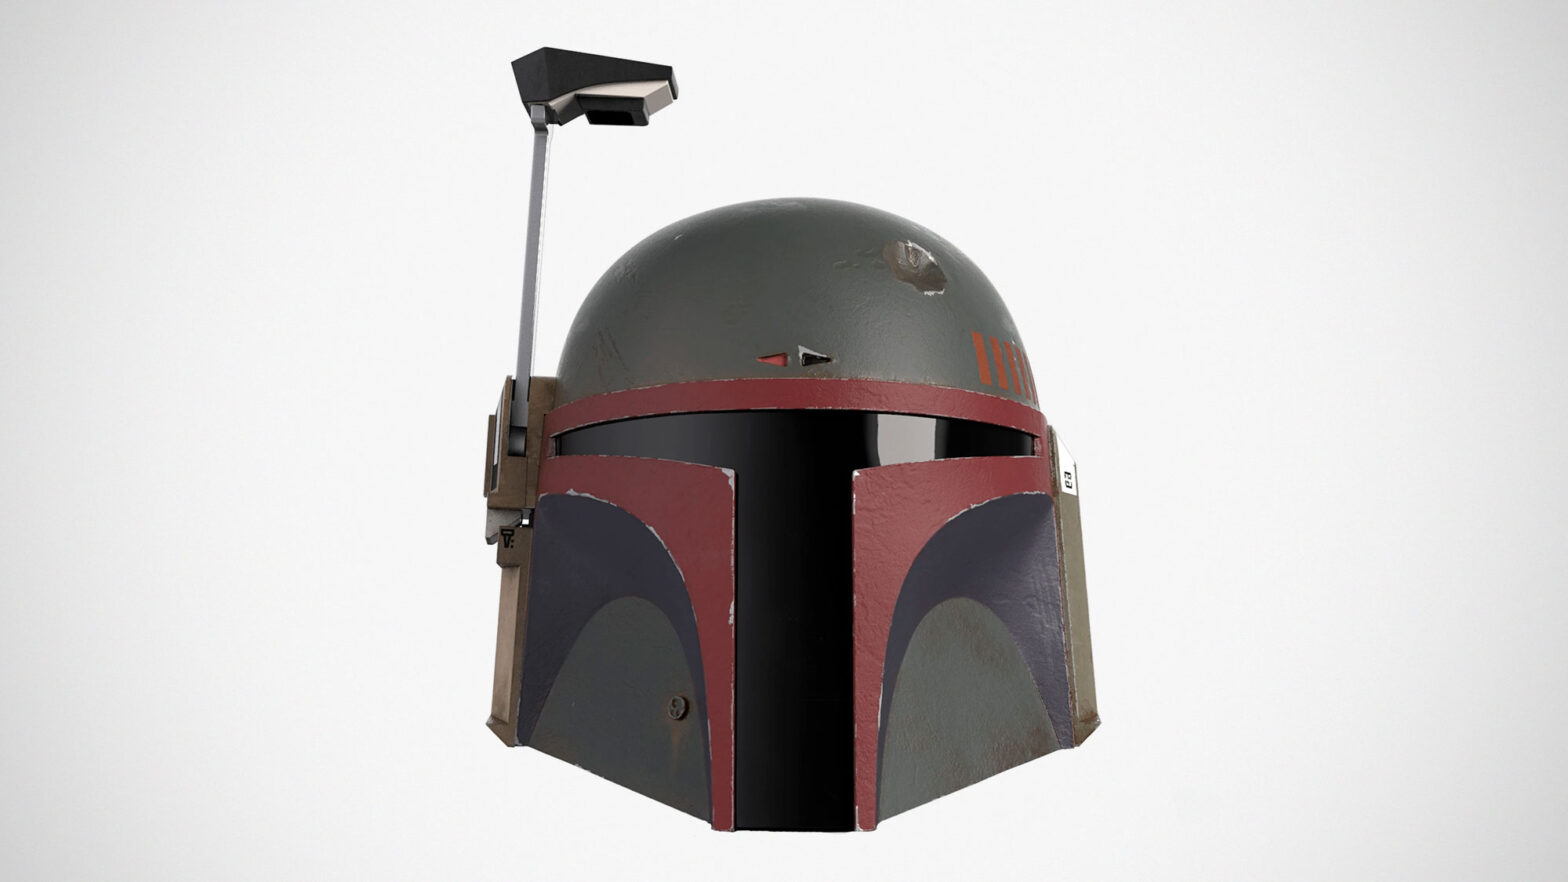 Star Wars The Black Series Boba Fett Re-Armored Helmet